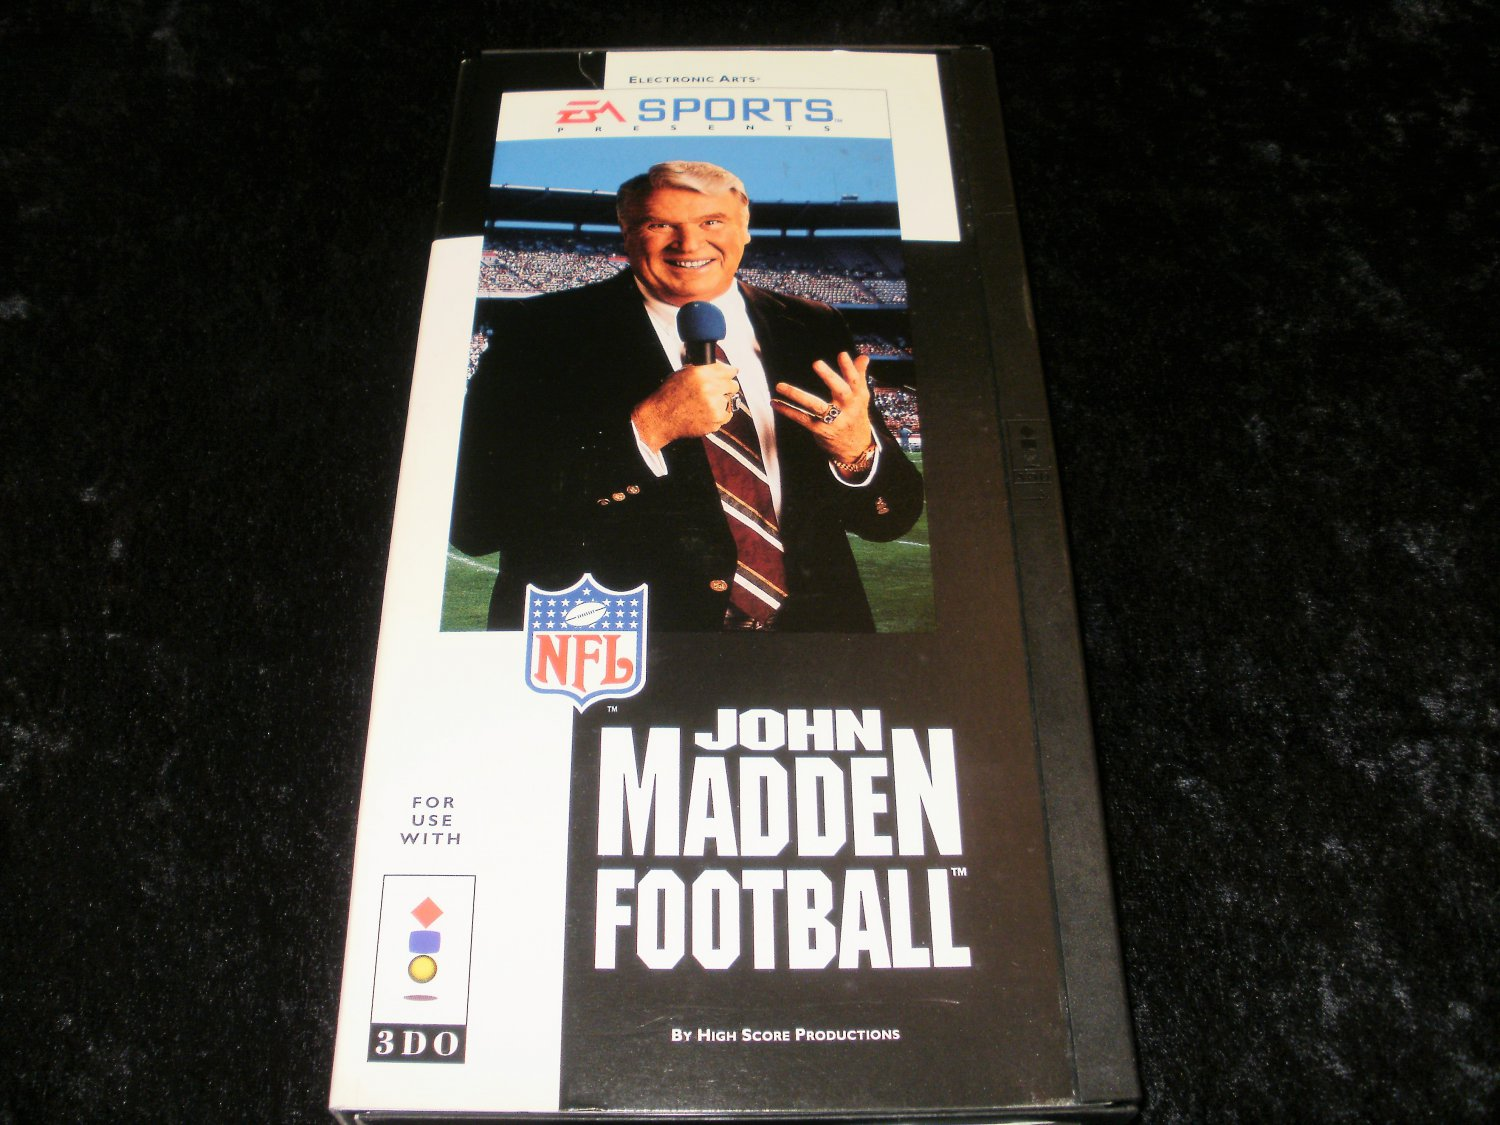 John Madden Football - 3DO - Complete CIB